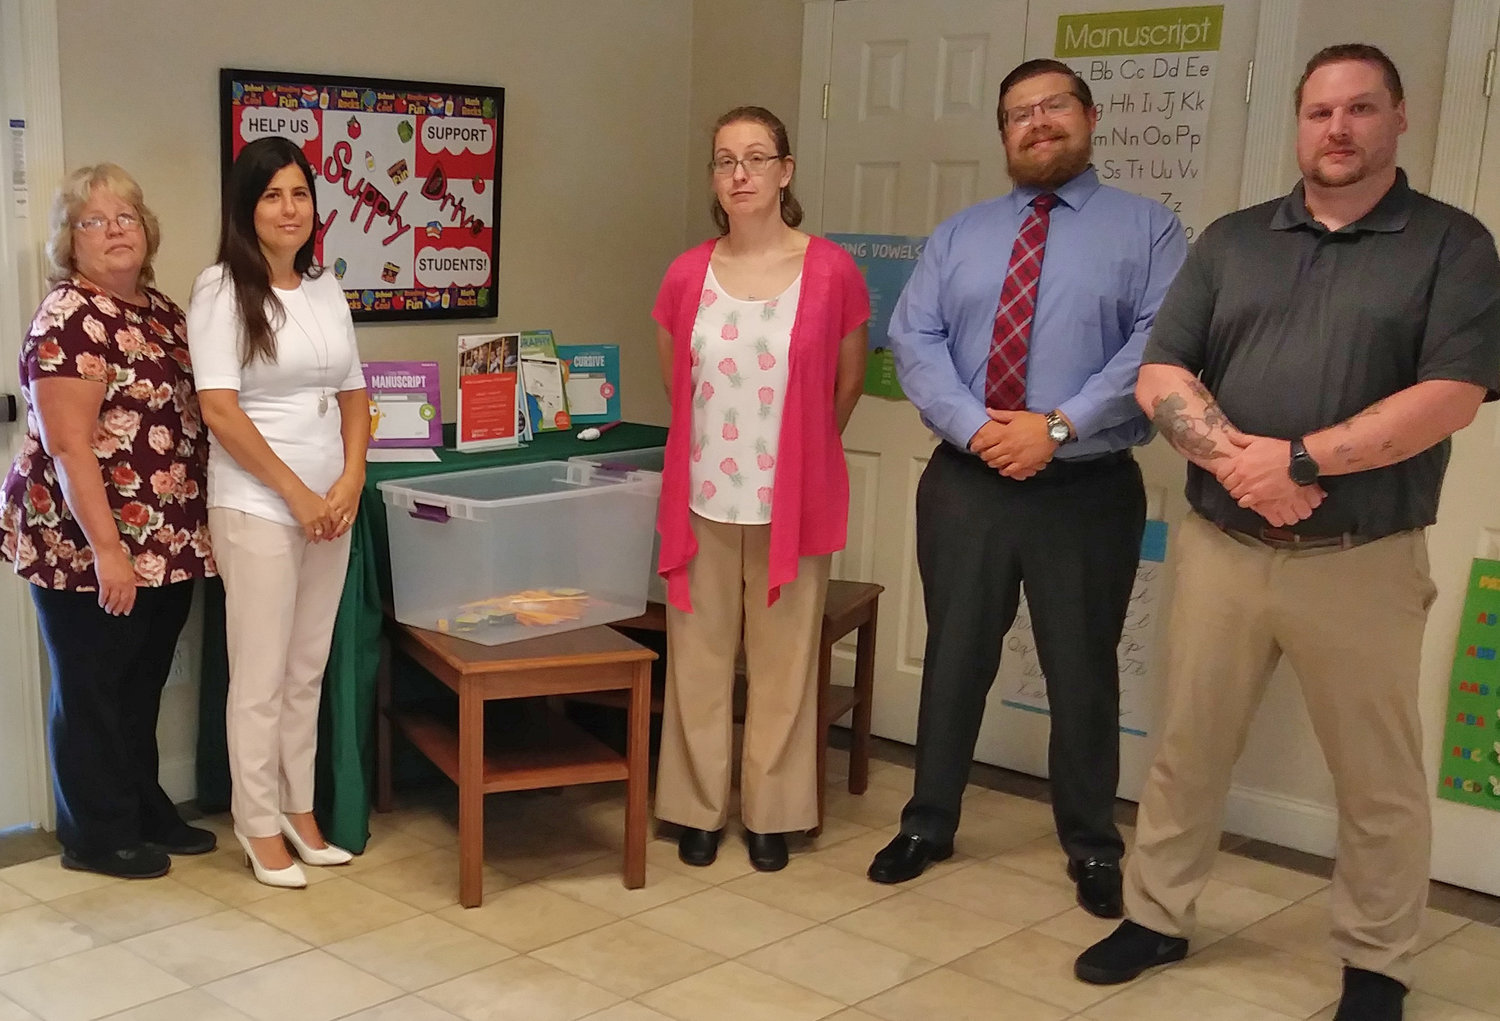 HELPING KIDS — The Community Bank N.A. branch in Vernon, 5238 W. Seneca St., is holding its annual school supply drive to benefit students in the Vernon-Verona-Sherrill School District. Among those involved in the effort are, from left: Kelley Kimball, bank teller; Stacy Dangler, customer service representative; Lori Bartch, assistant manager; Willis Corney, branch manager; and Nicholas Bogart, teller.(Photo submitted)